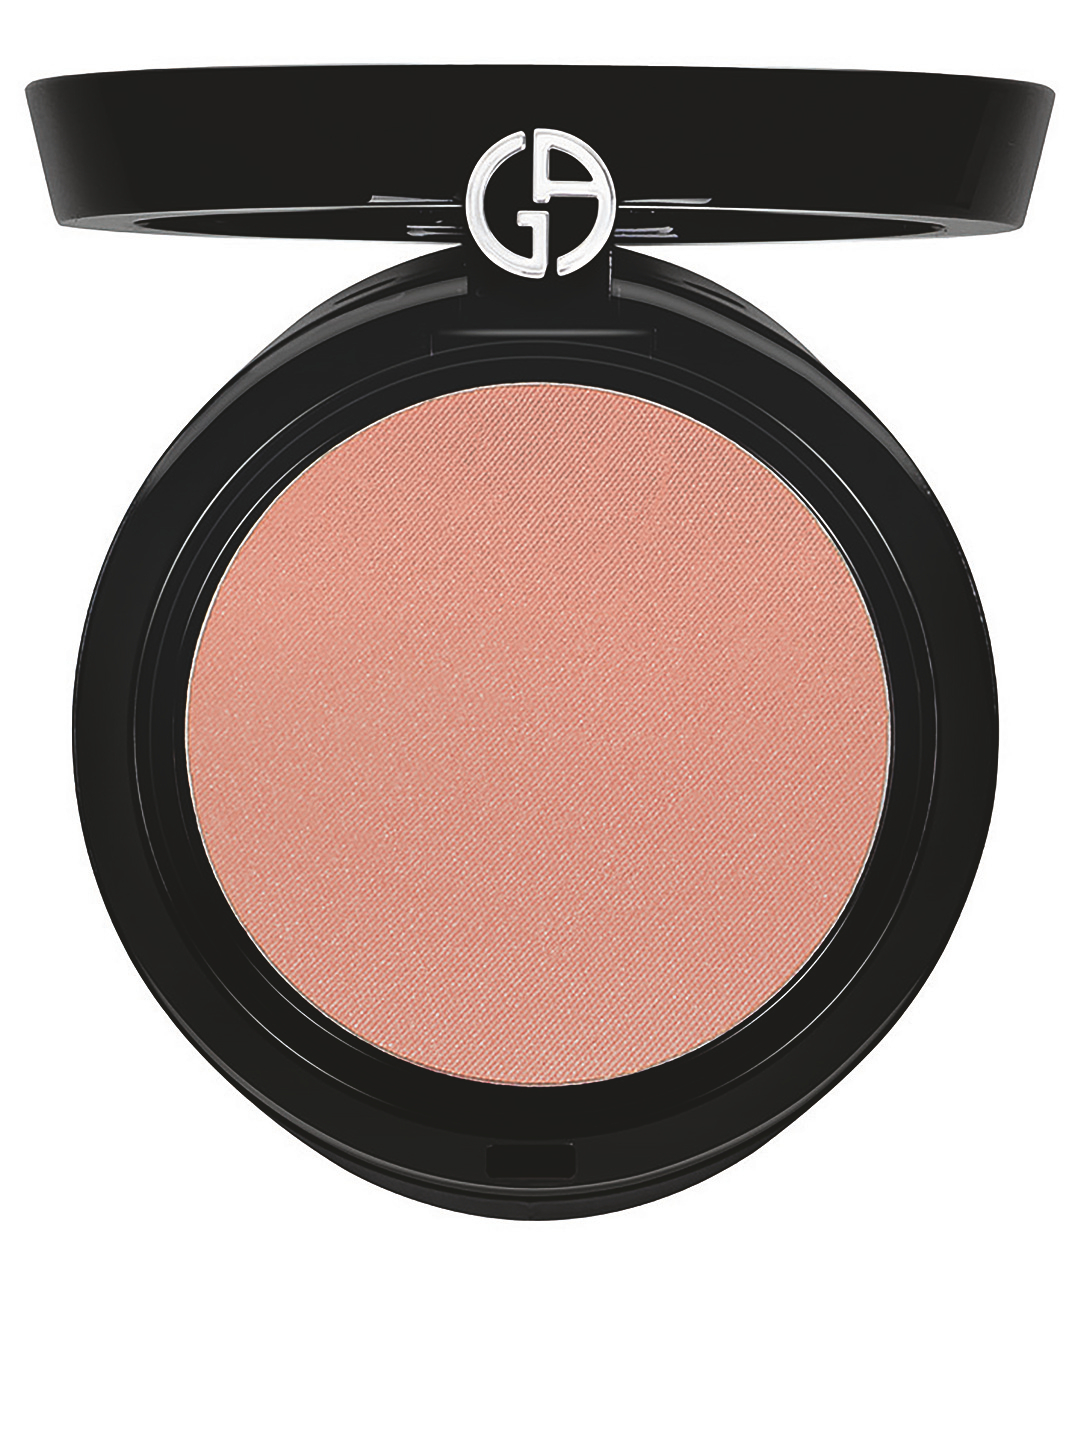 GIORGIO ARMANI Cheek Fabric Blush Beauty Pink